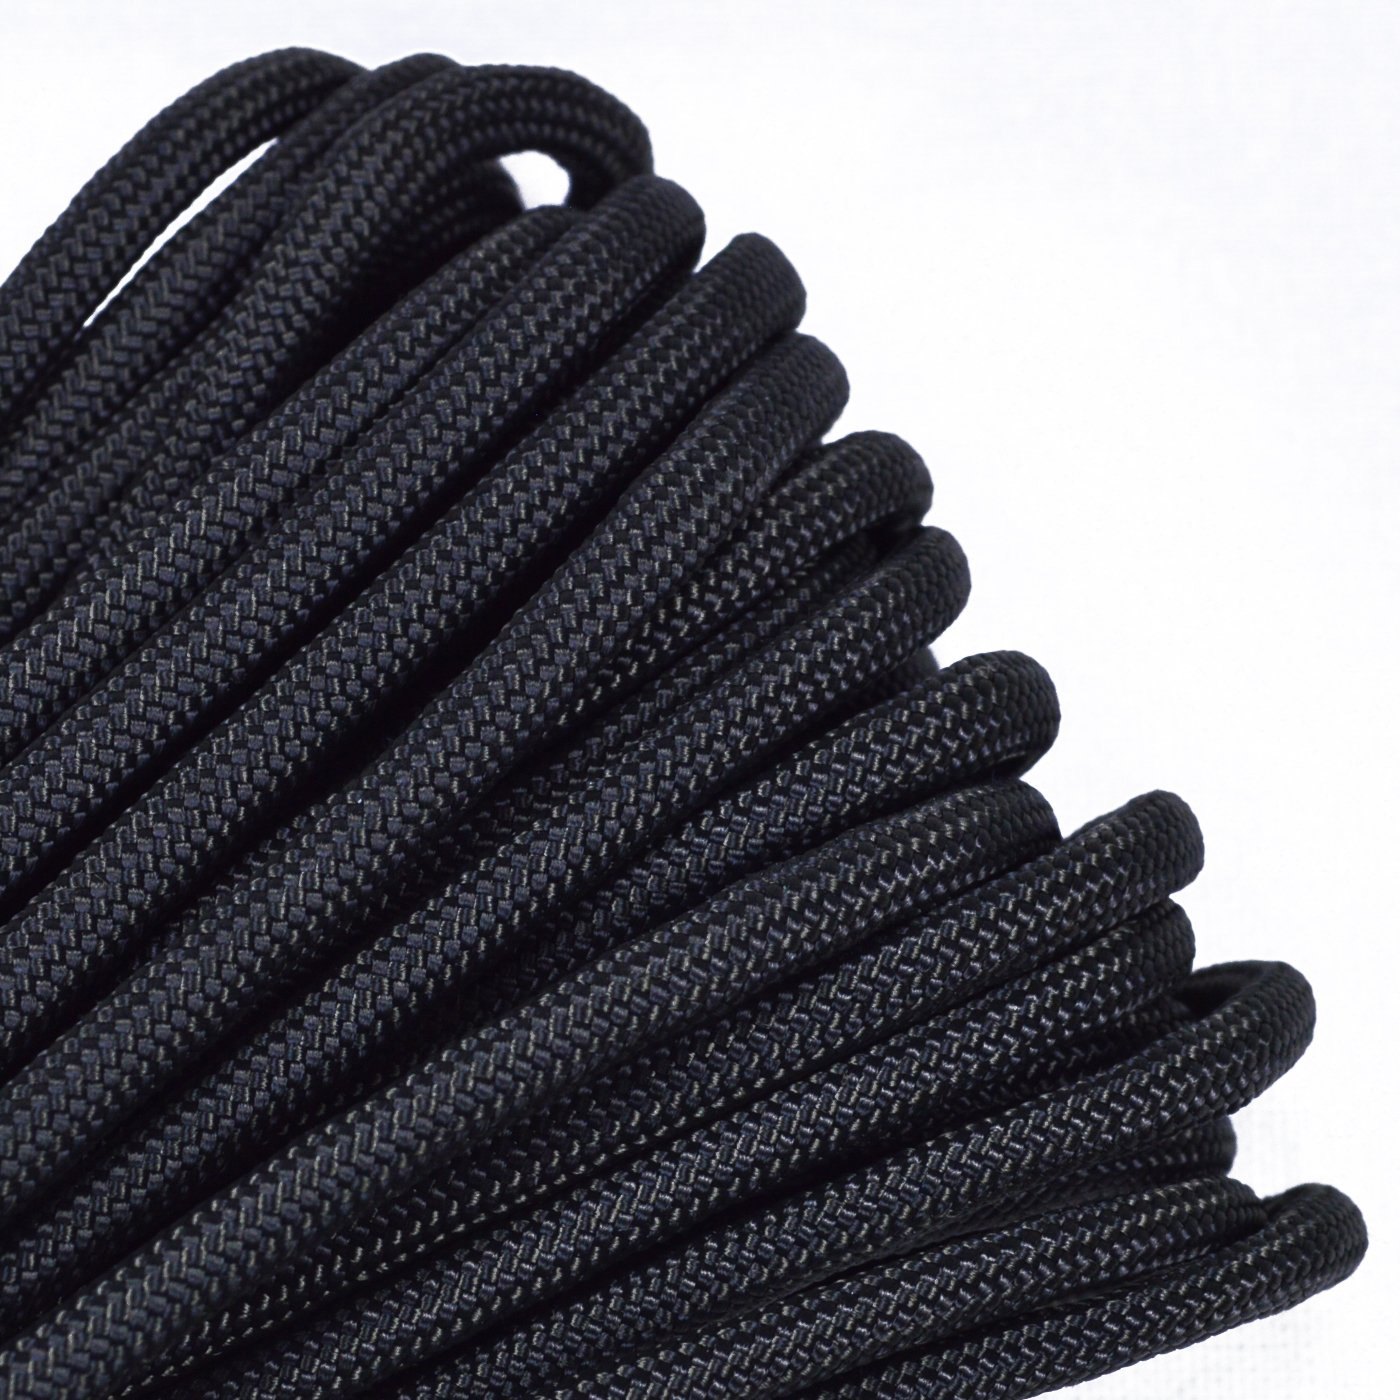 Pro Grade Paracord Mil-Spec Commercial Grade 550lb Type III Nylon Paracord Multiple Colors